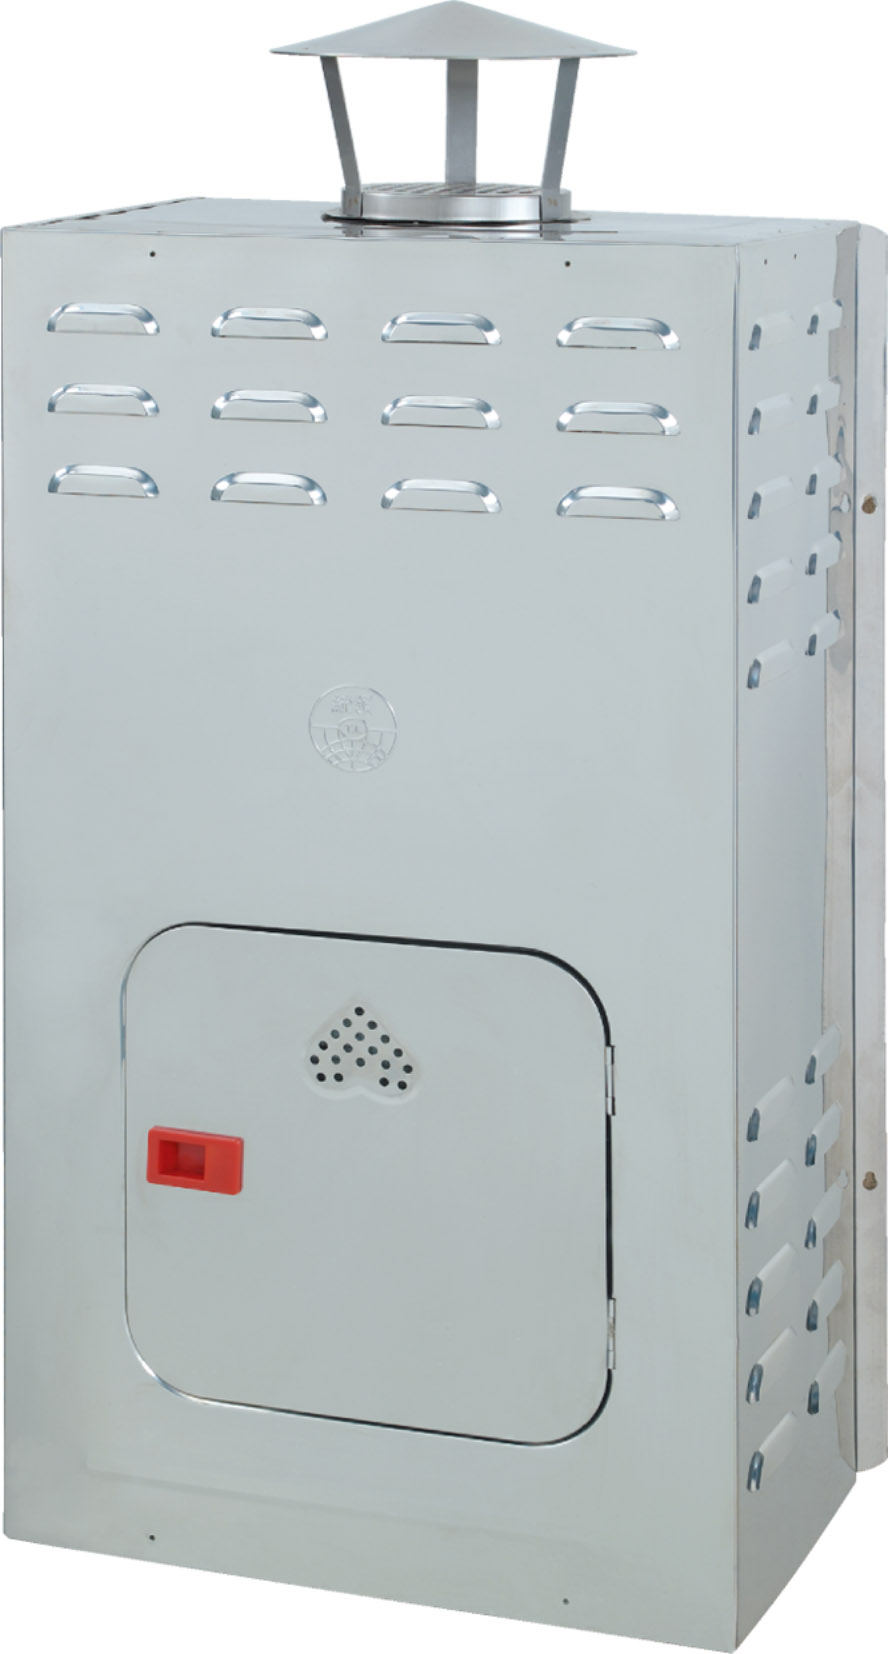 Stainless steel housing-G68-type water heater